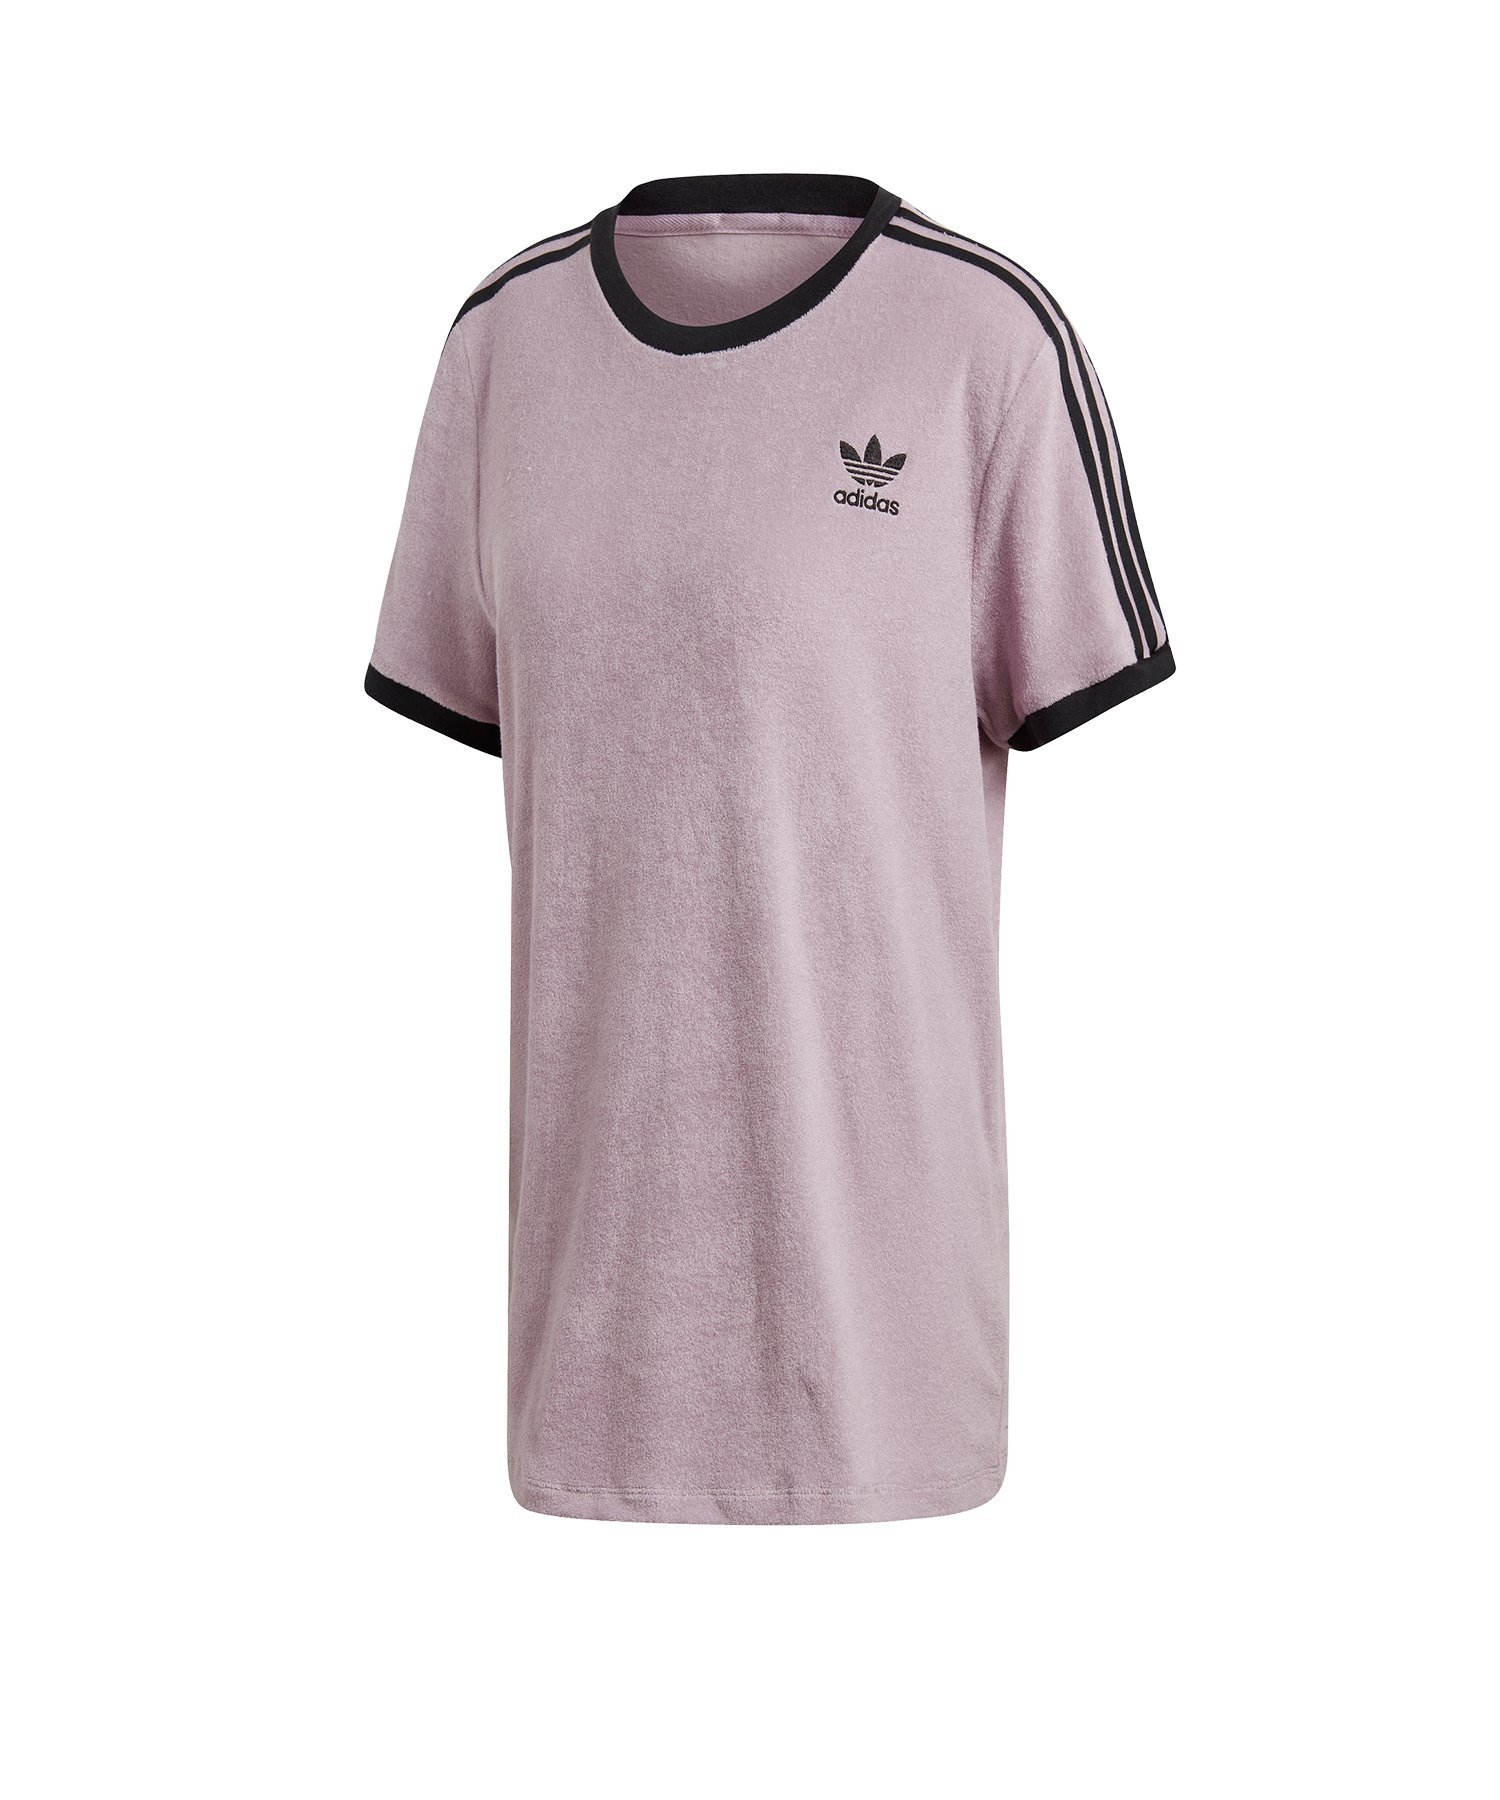 adidas Originals 3 Stripes Tee T-Shirt Damen Lila